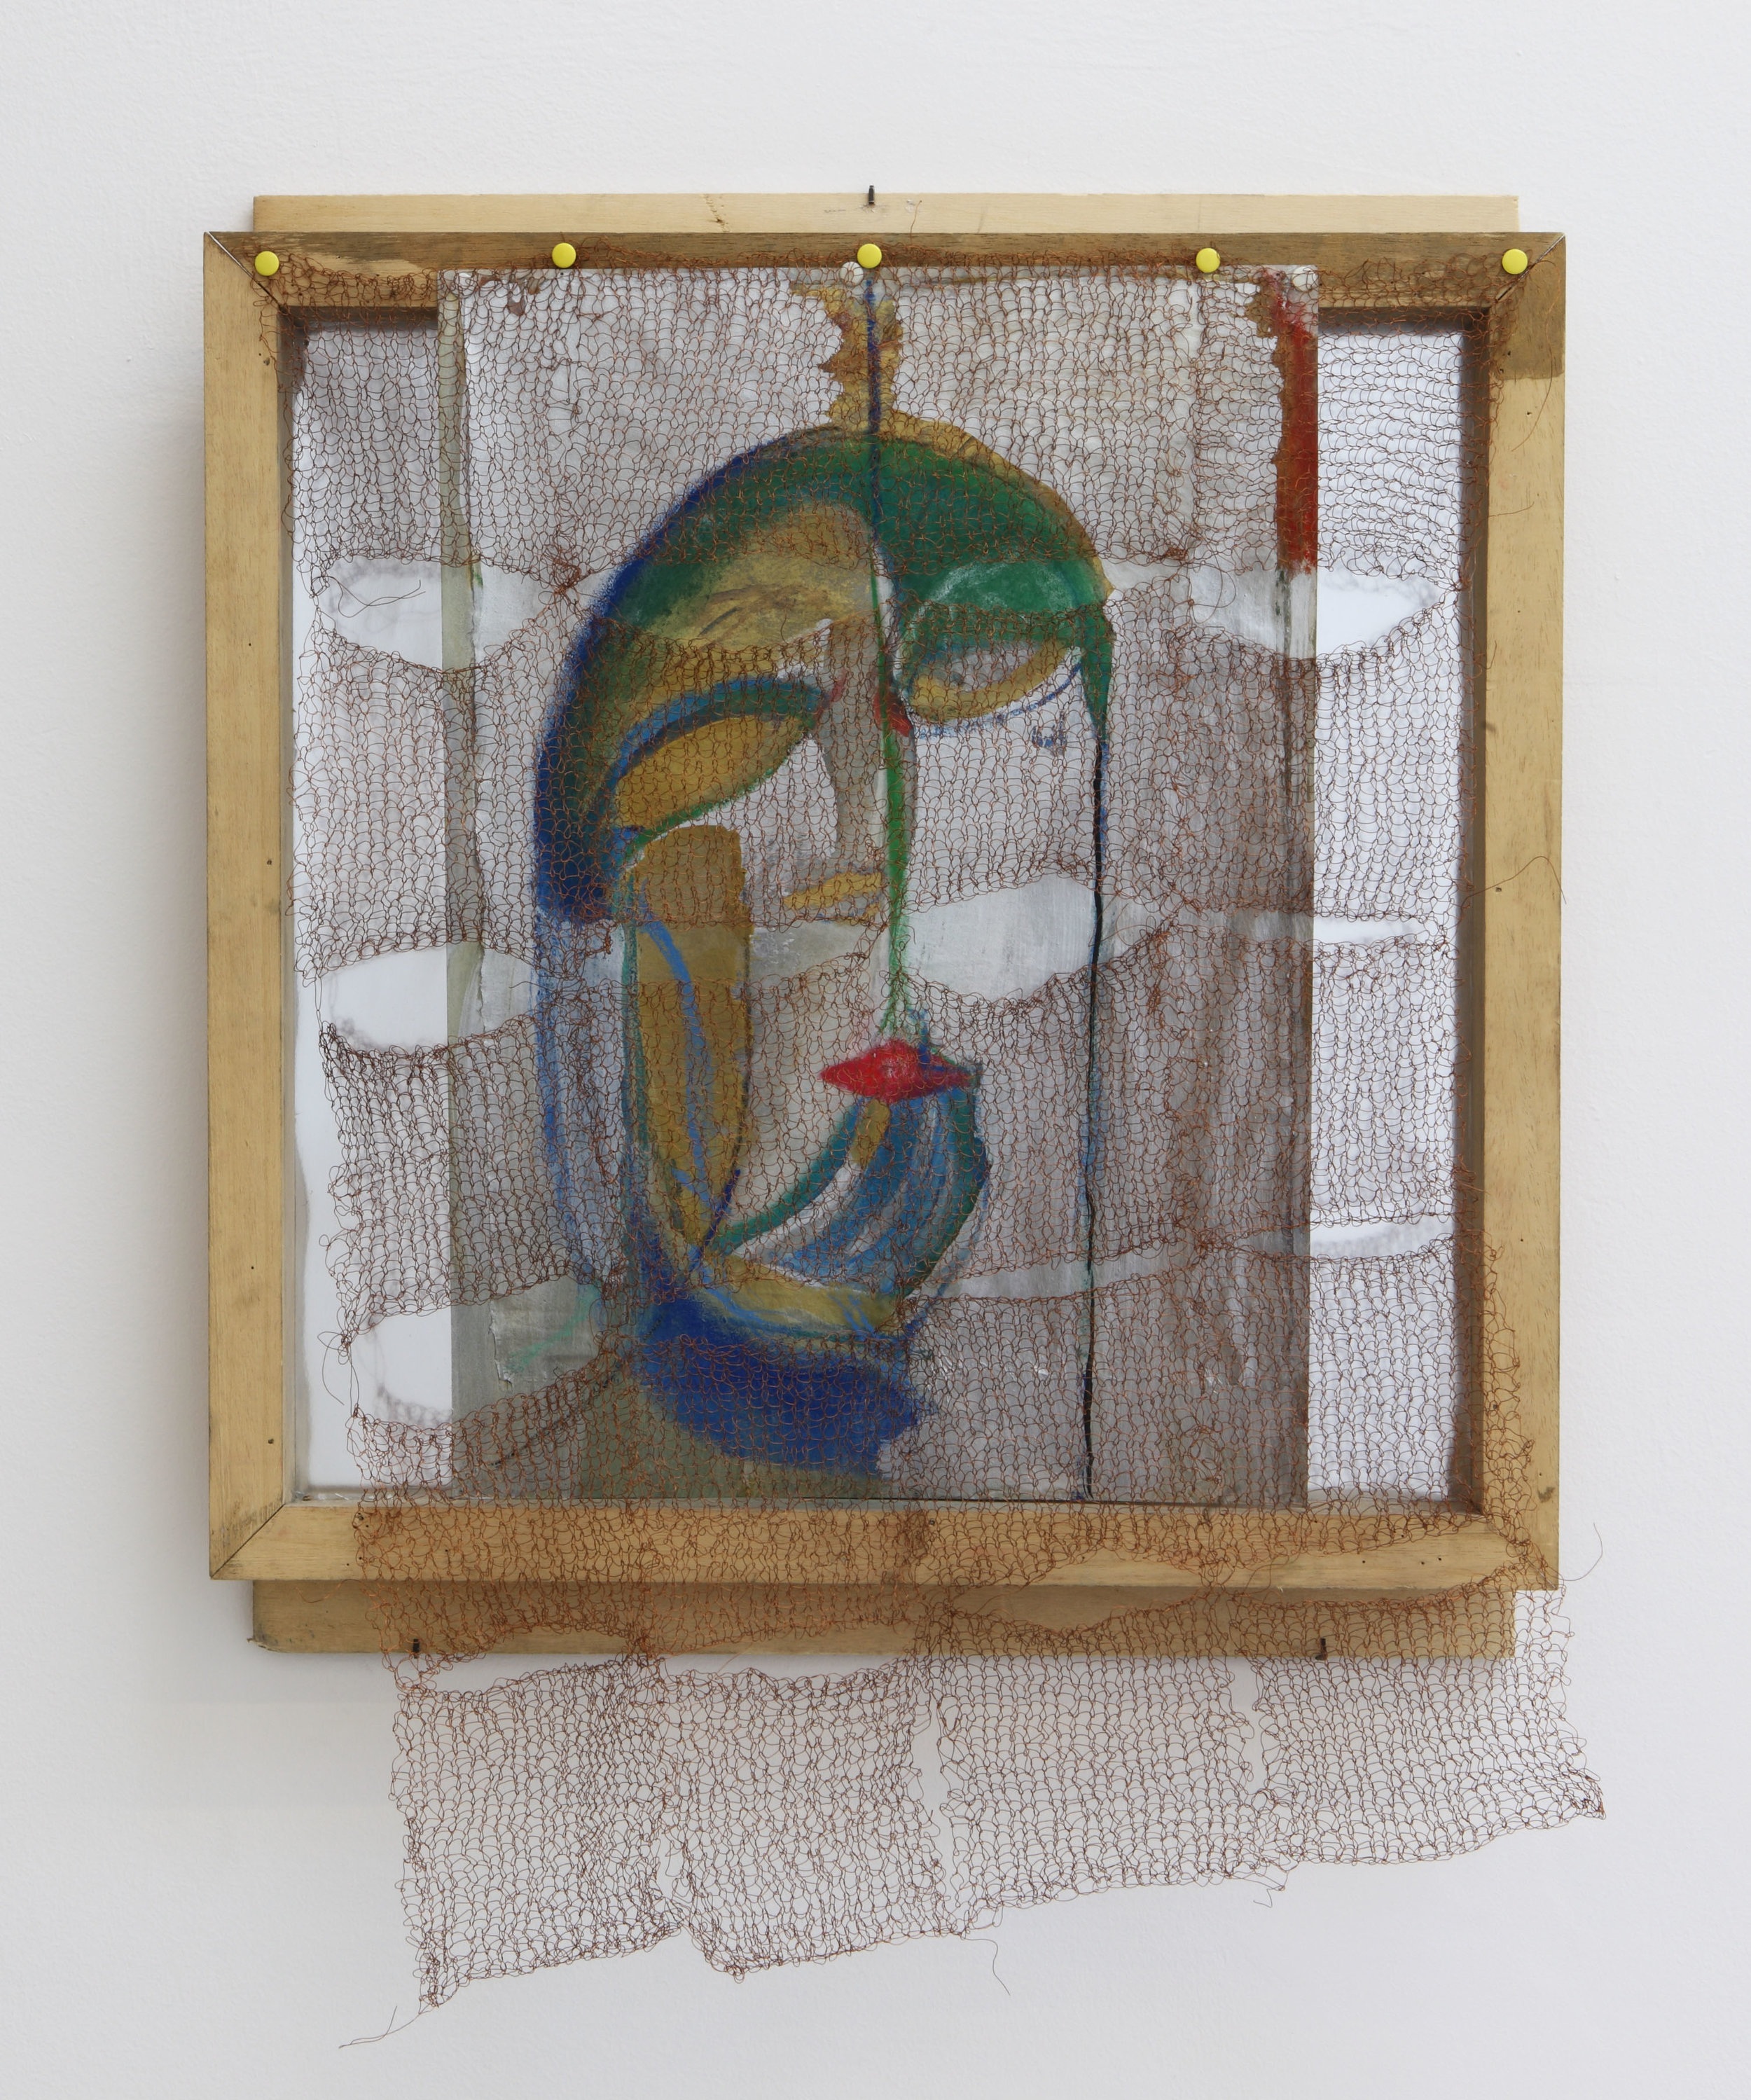 Marisa Merz, Untitled, 2009 Painted metal sheets, copper wire, wooden frame Private collection, Switzerland; courtesy of Monica De Cardenas Gallery, Milan and Zuoz Photo by Paolo Pellion di Persano